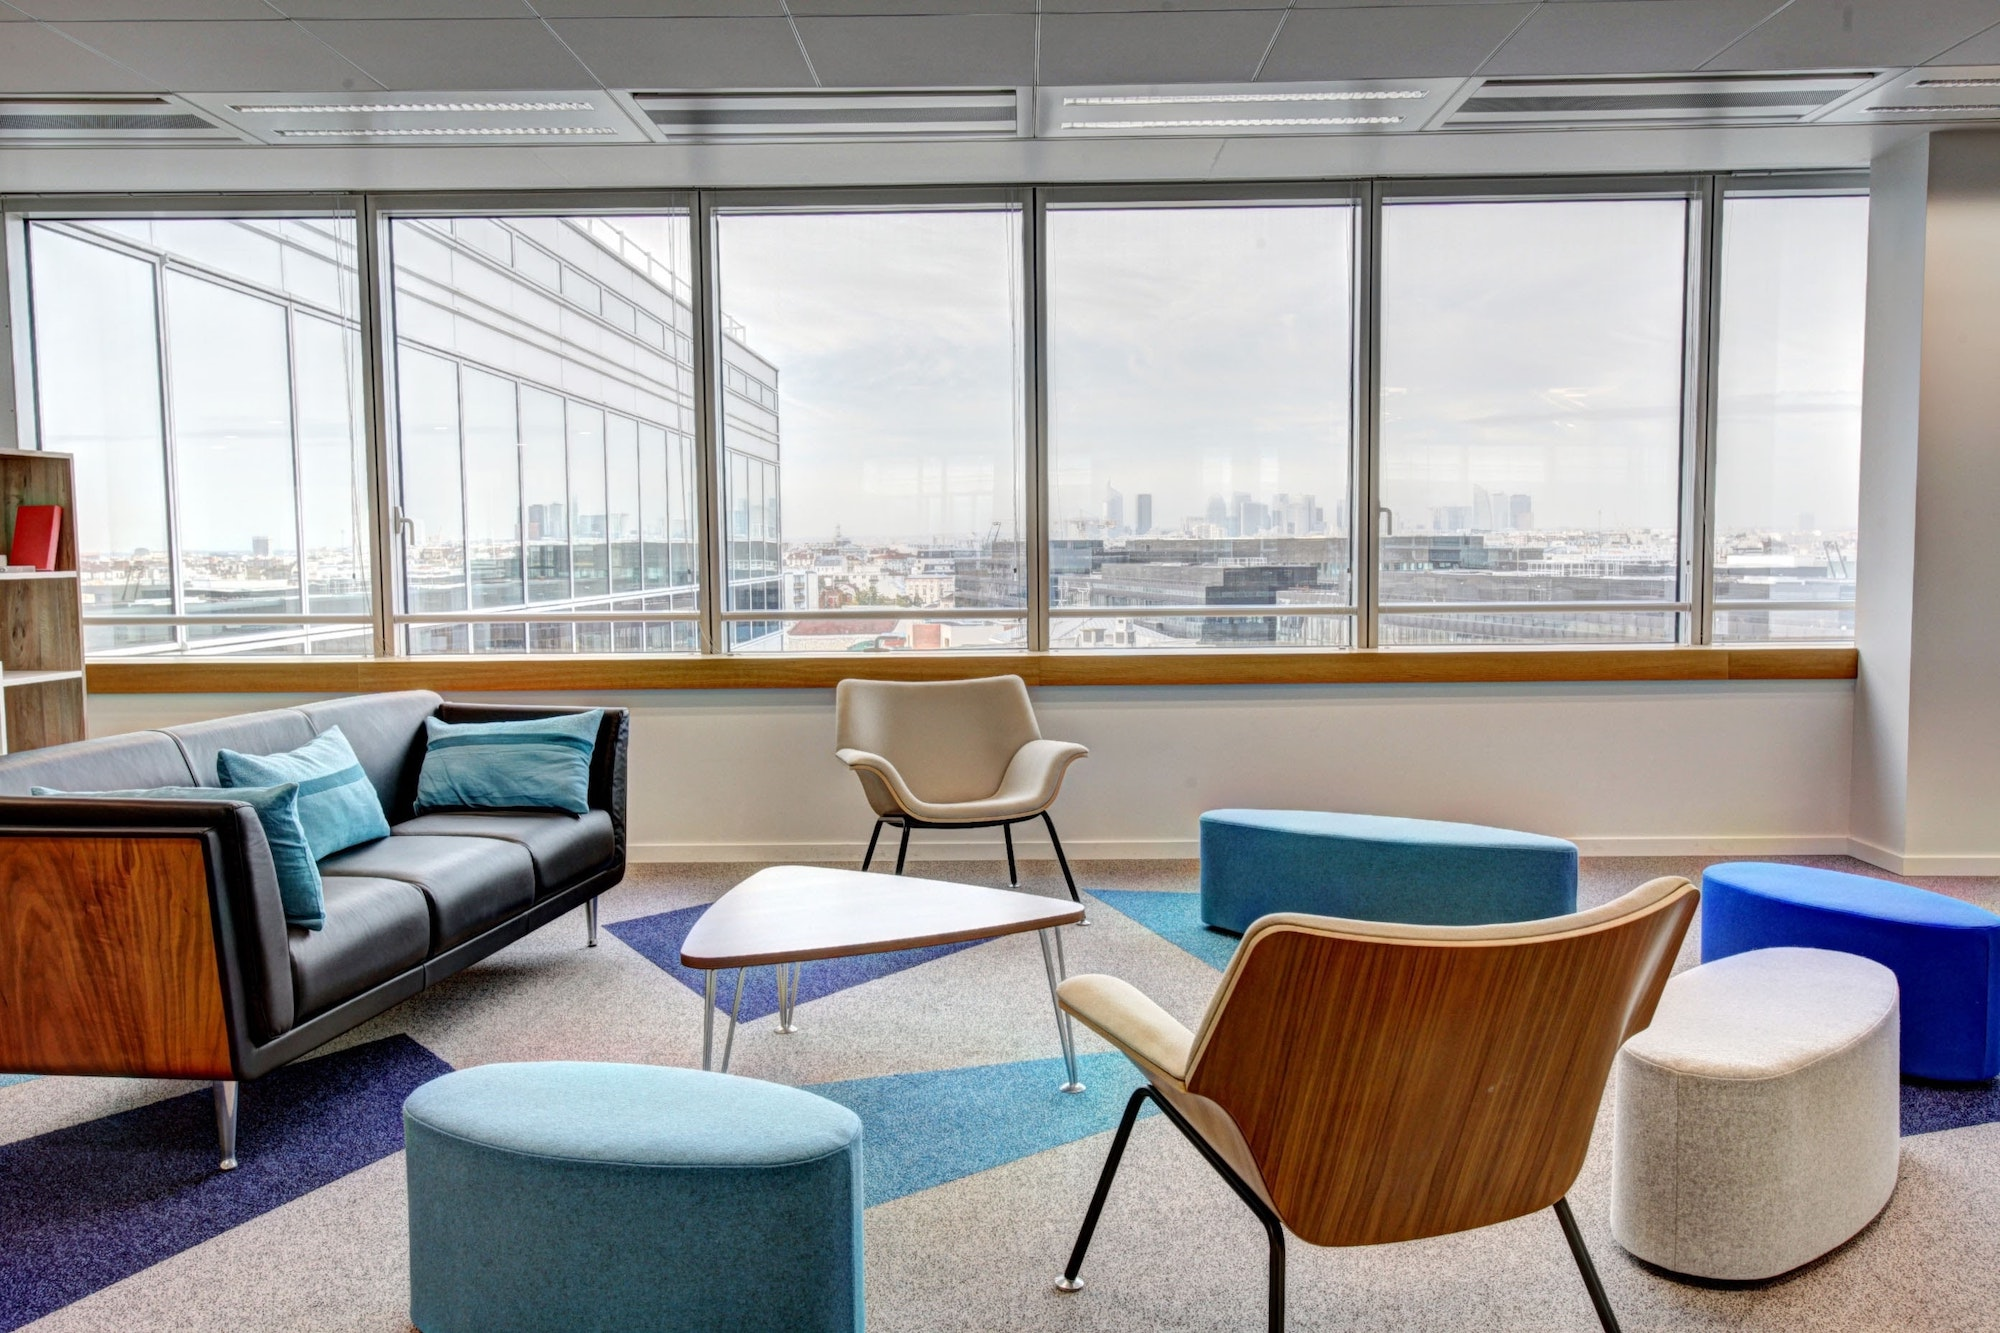 empty chairs arrayed around a modern coffee table in a vacant conference room with a city view through windows in the background